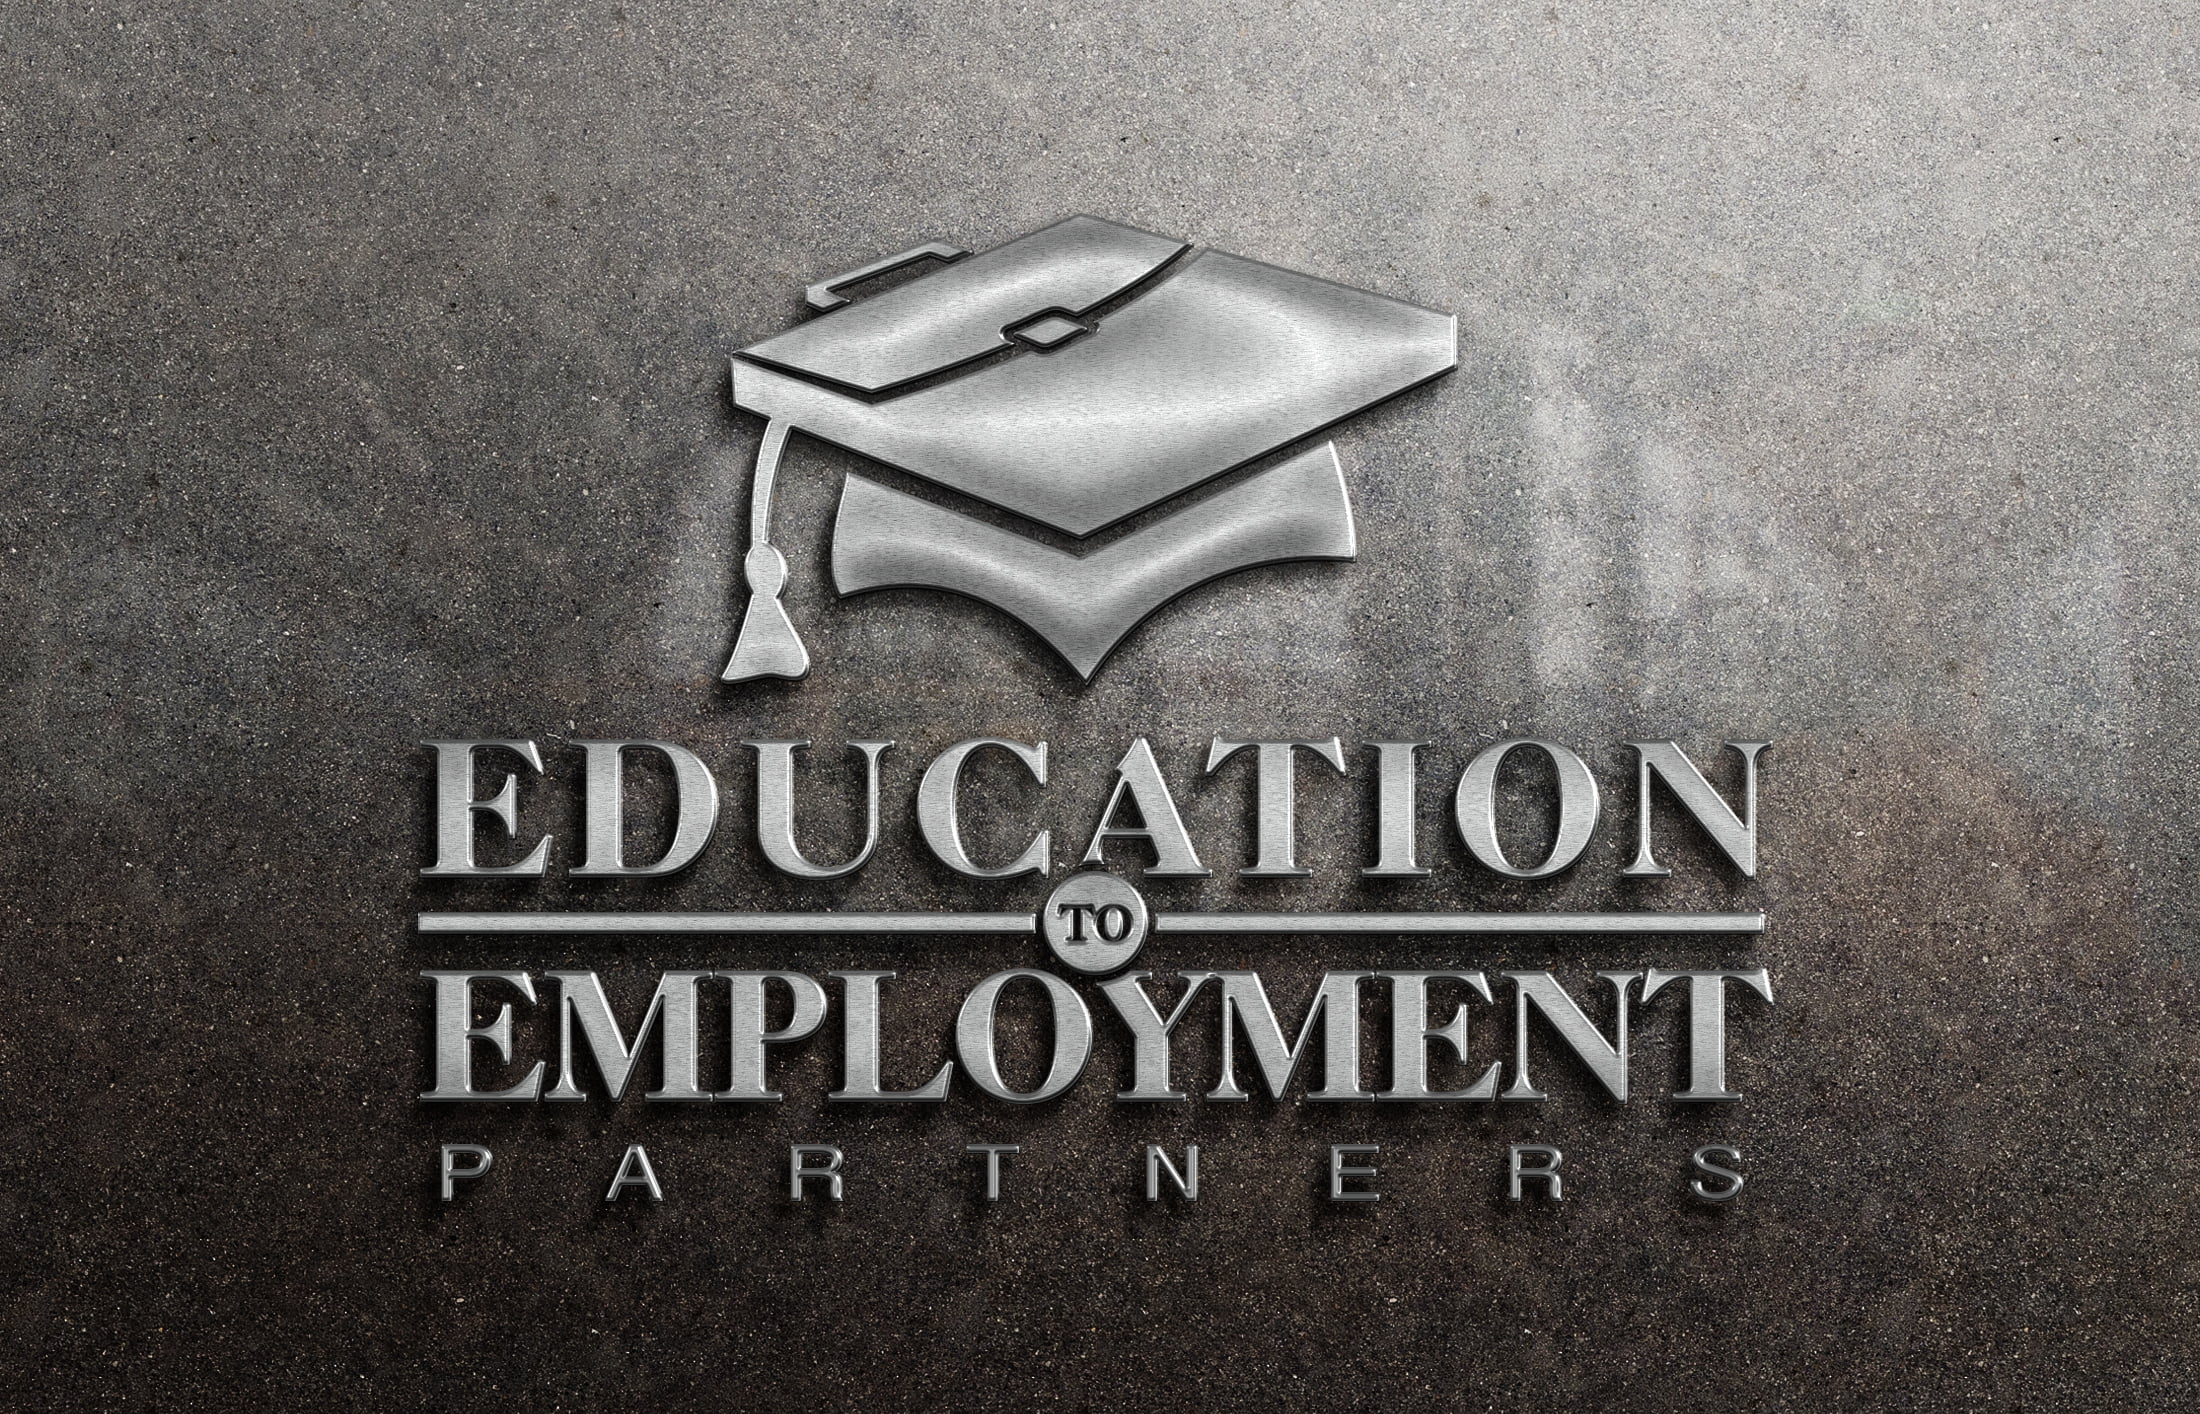 Education to Employment Partners Arrives